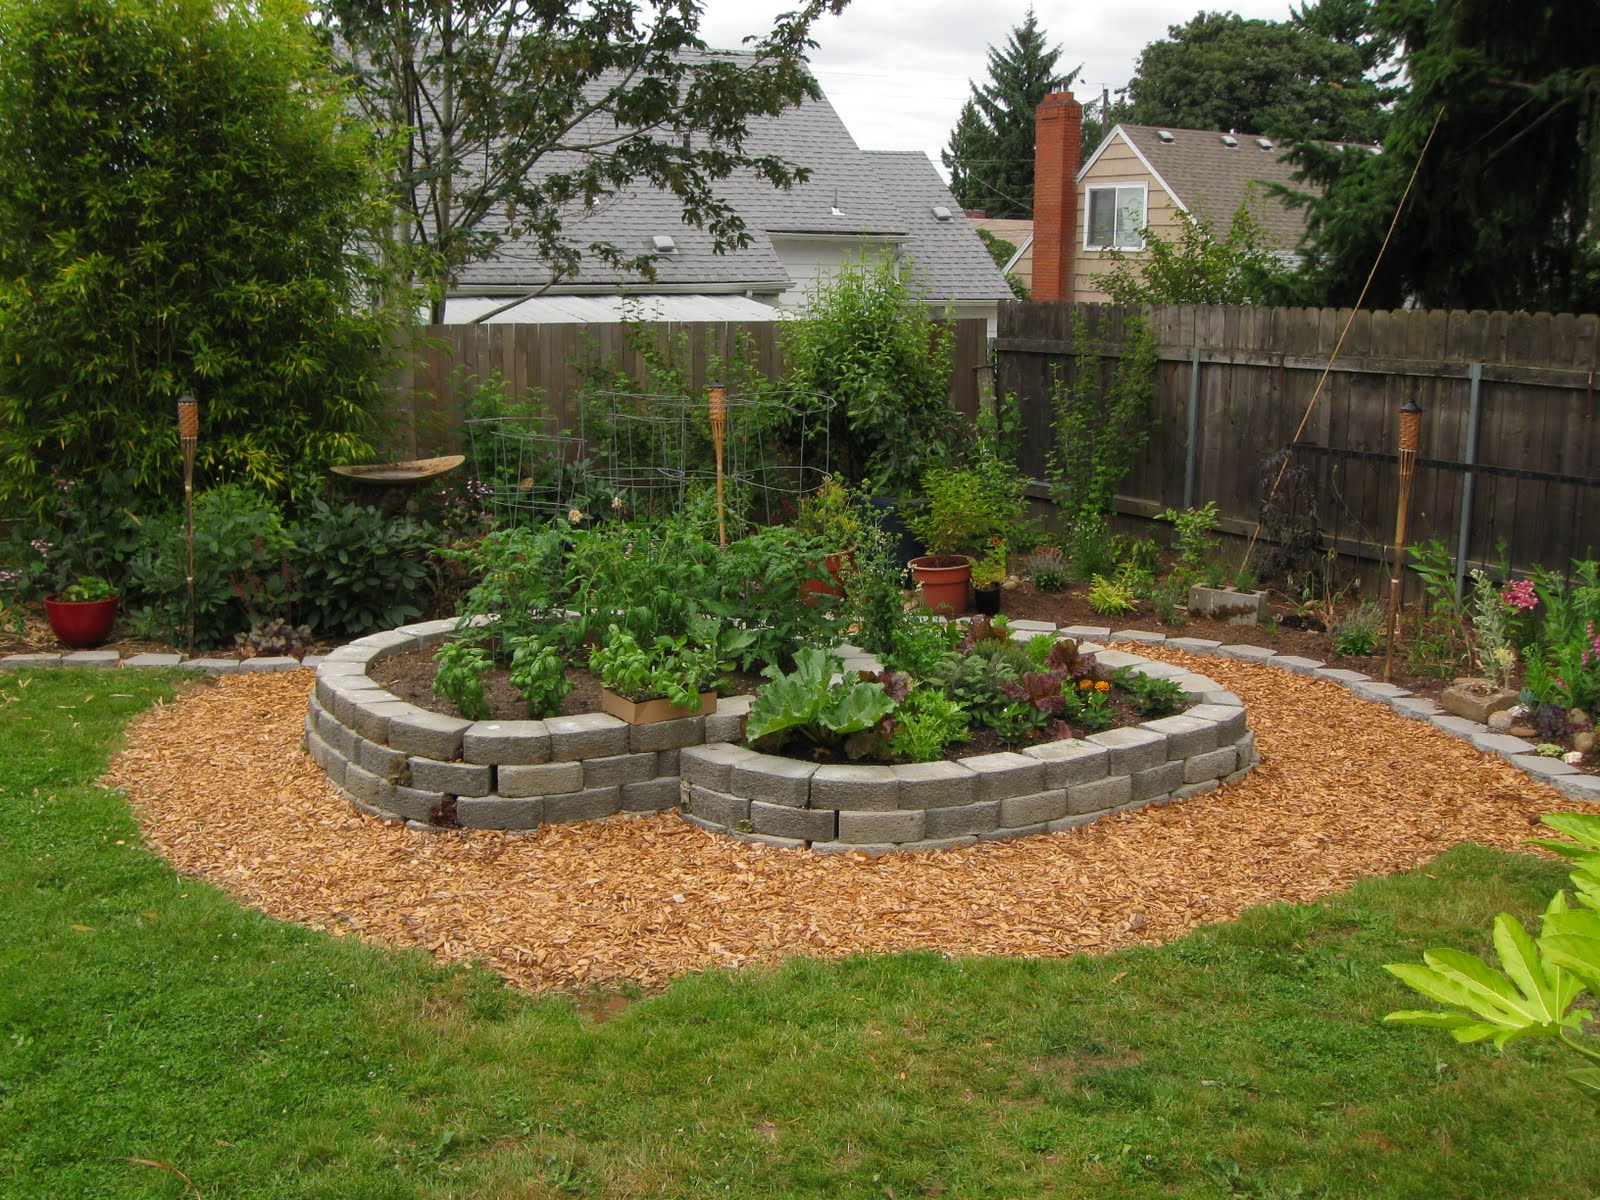 Simple landscaping ideas with low maintenance design and for Landscaping options